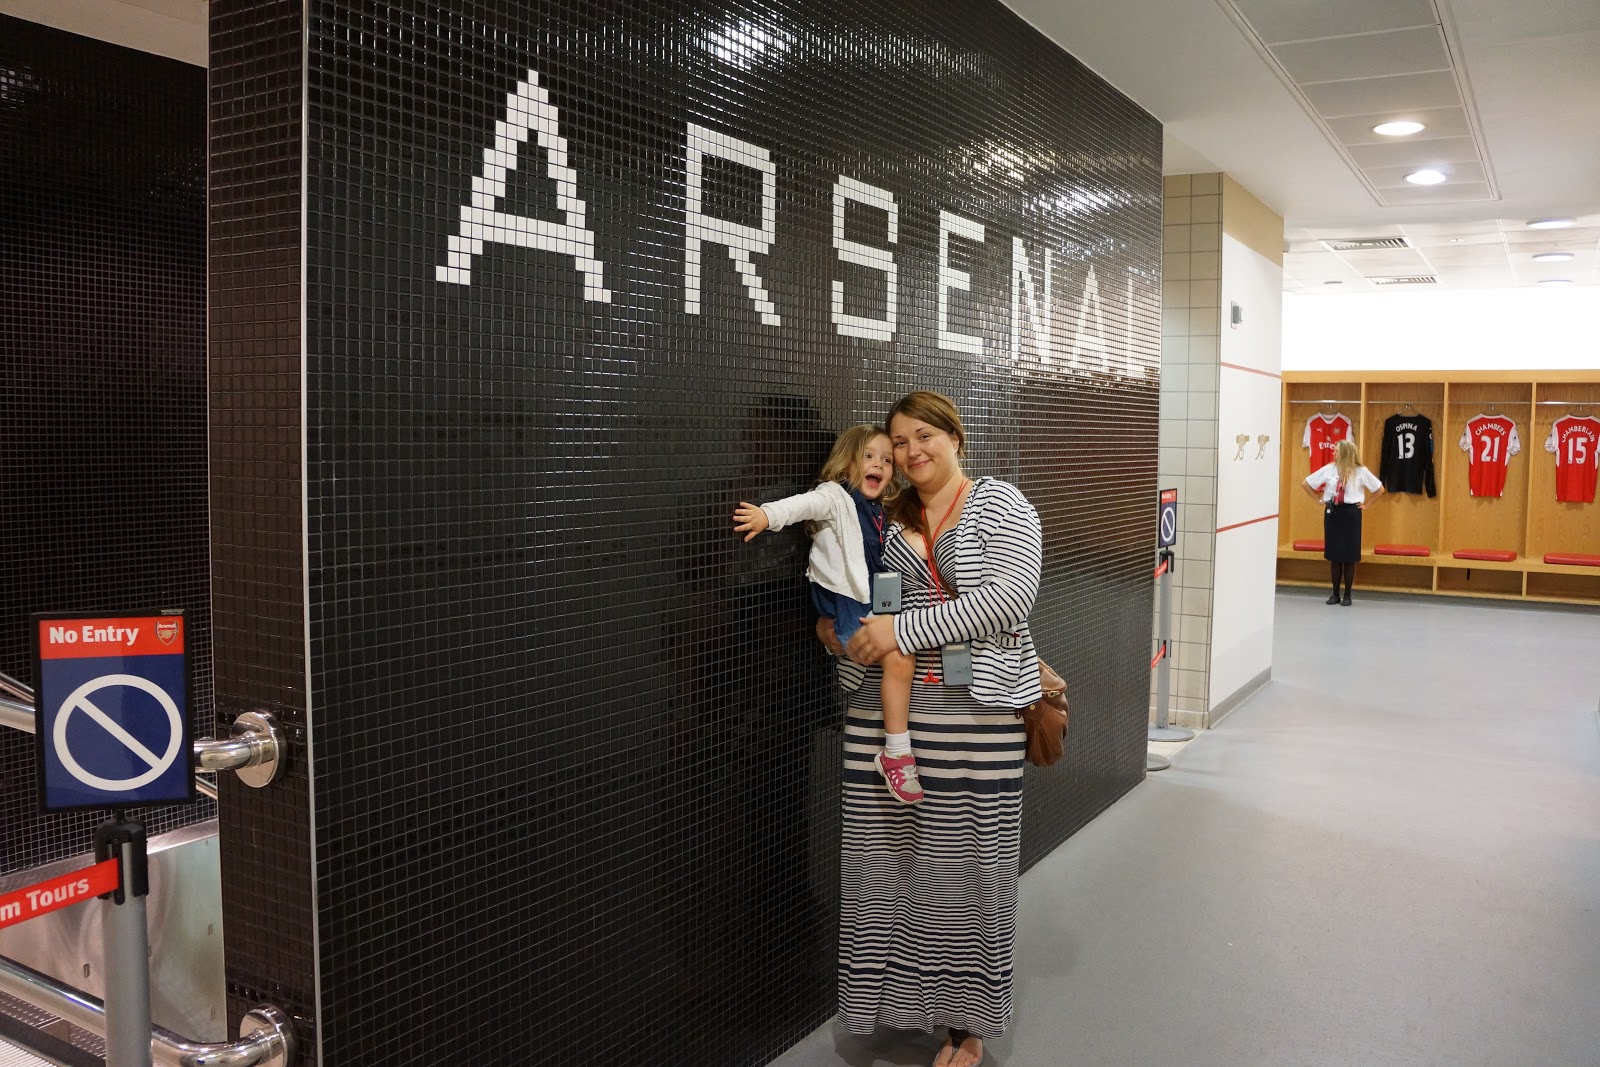 mum and daughter at Arsenal Stadium Tour players changing room